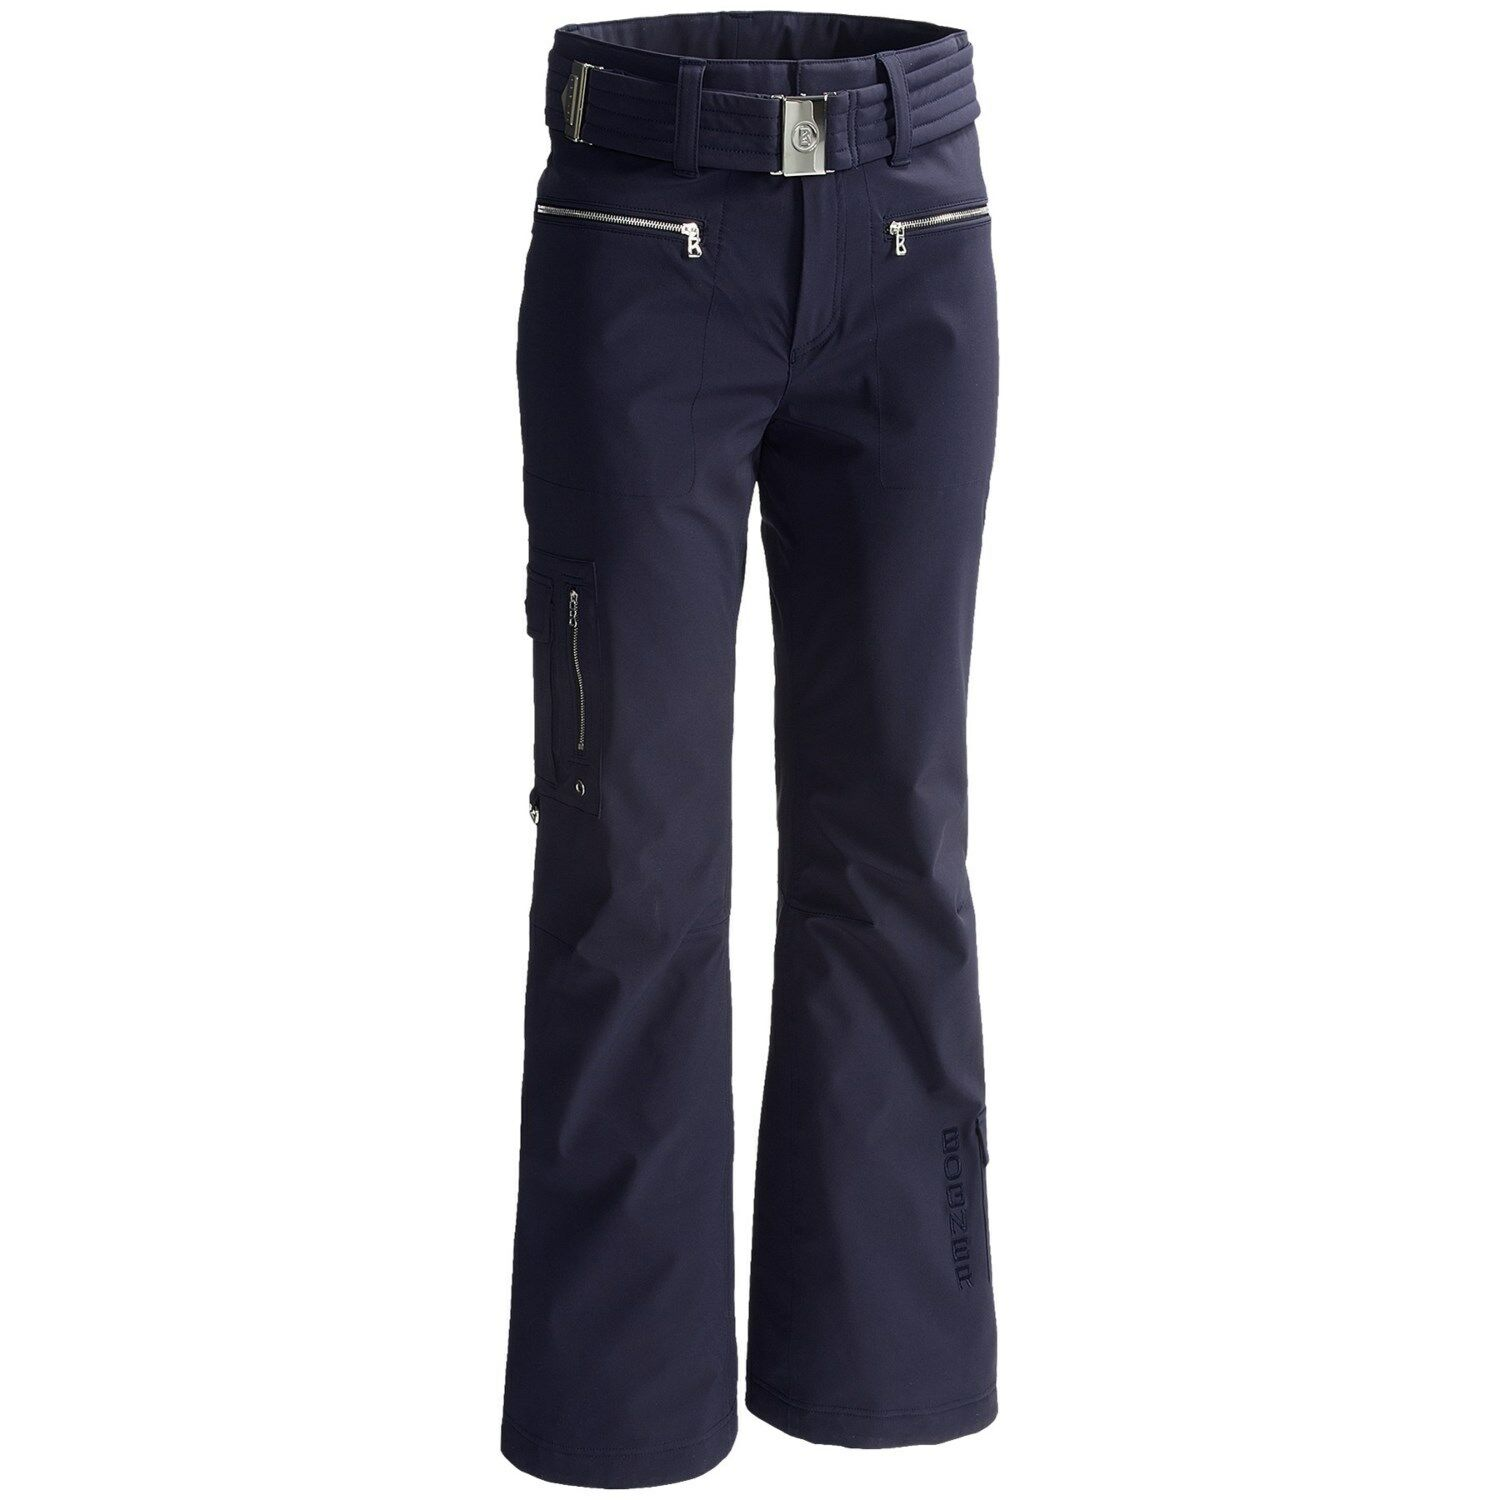 Bogner Lita Ski Pants  Slim  Fit, Insulated (For Women)12.R.L.bluee,NWT.  offering store